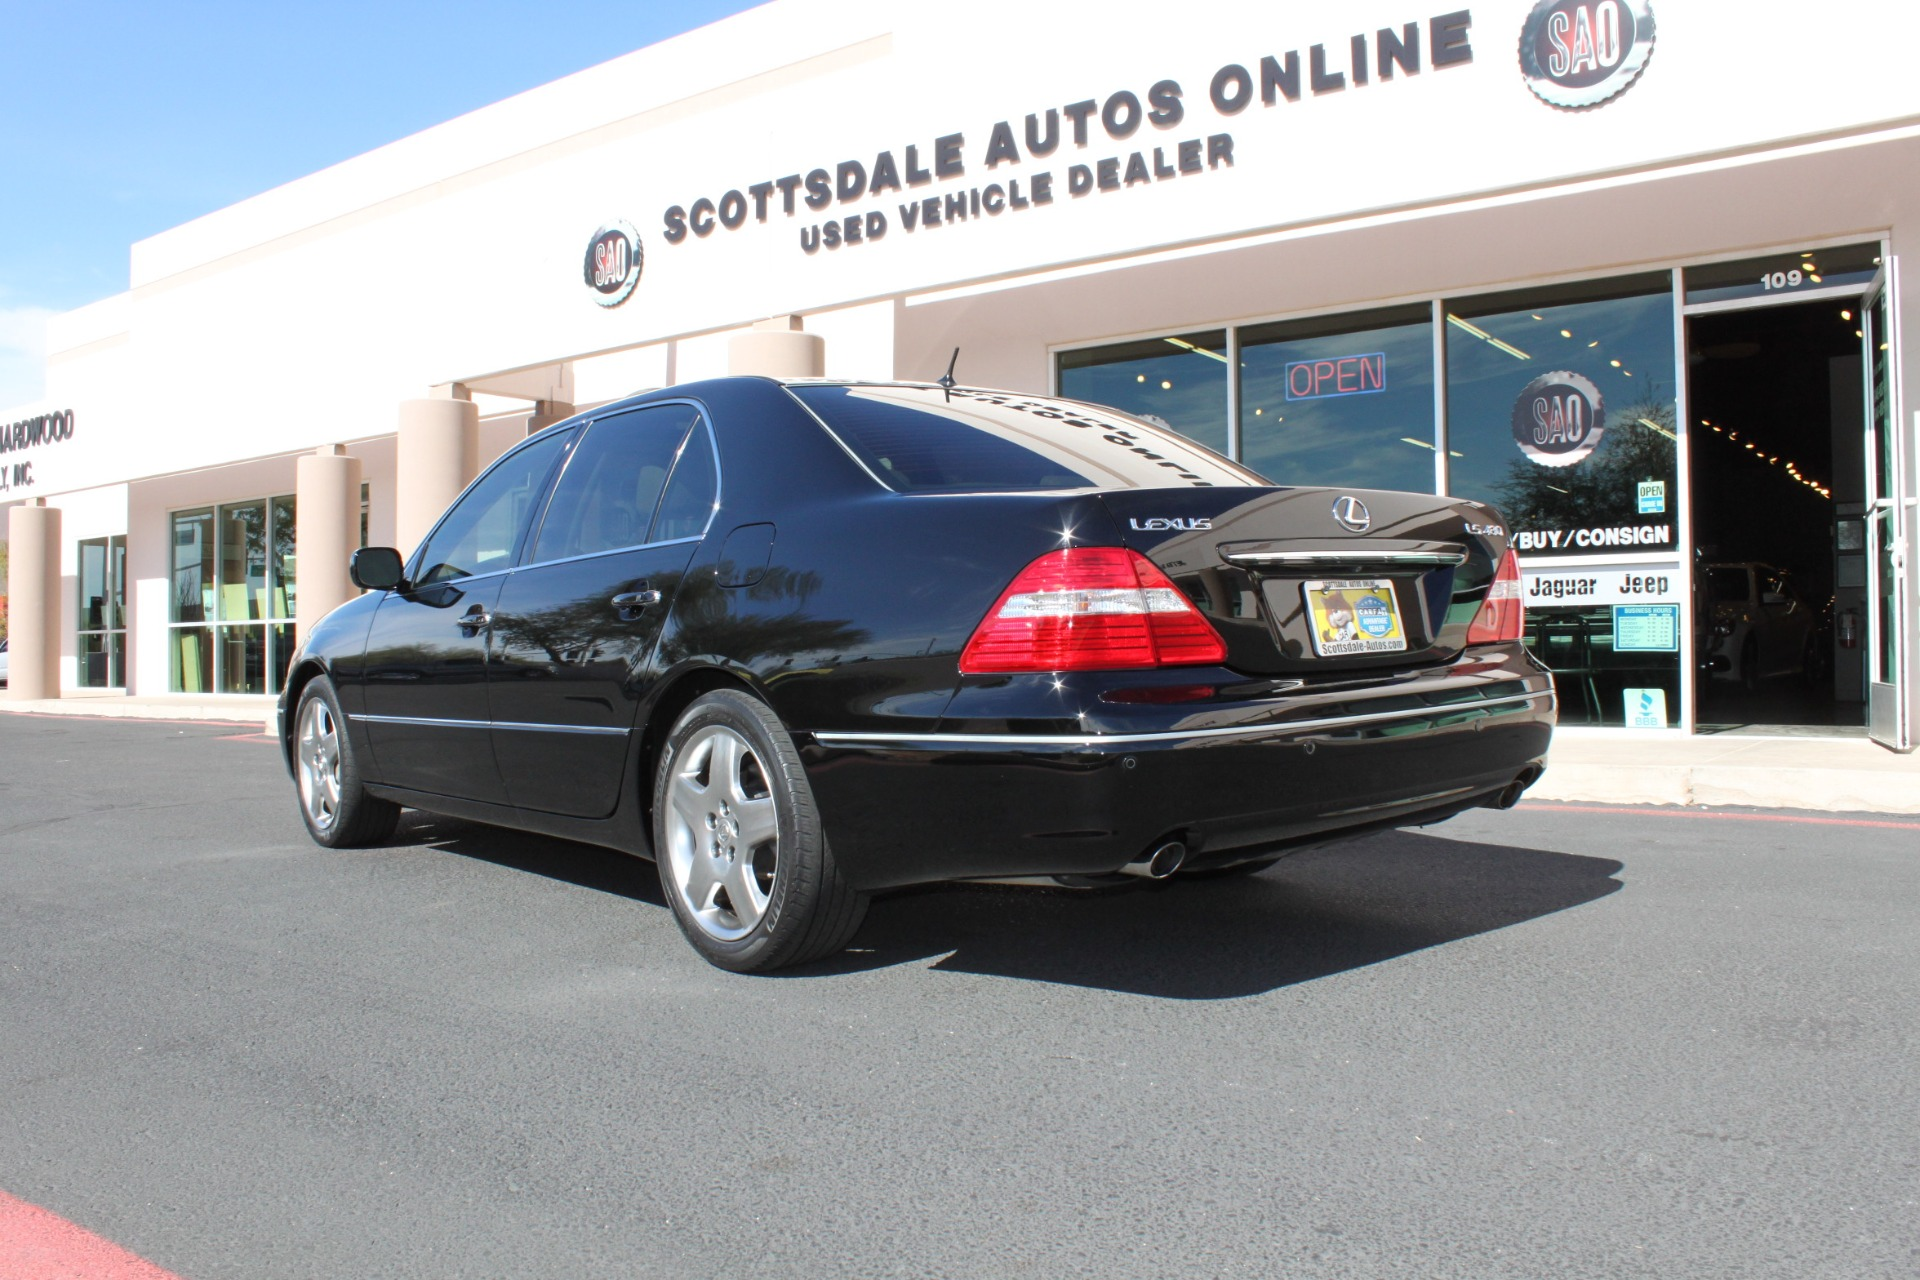 Used-2005-Lexus-LS-430-Chevelle